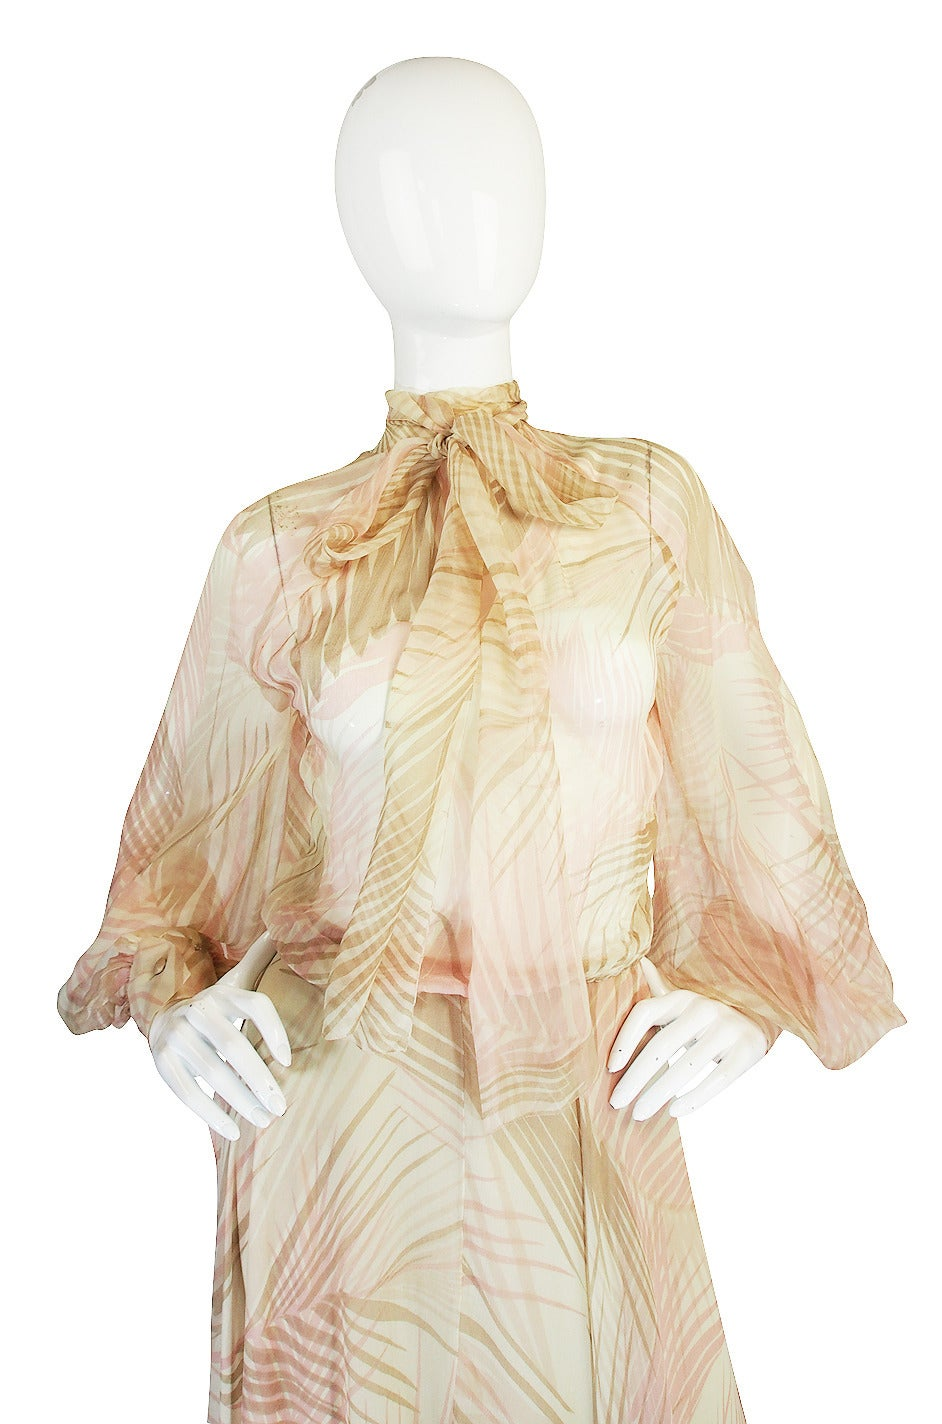 S/S 1974 Christian Dior Haute Couture Silk Gown For Sale 1